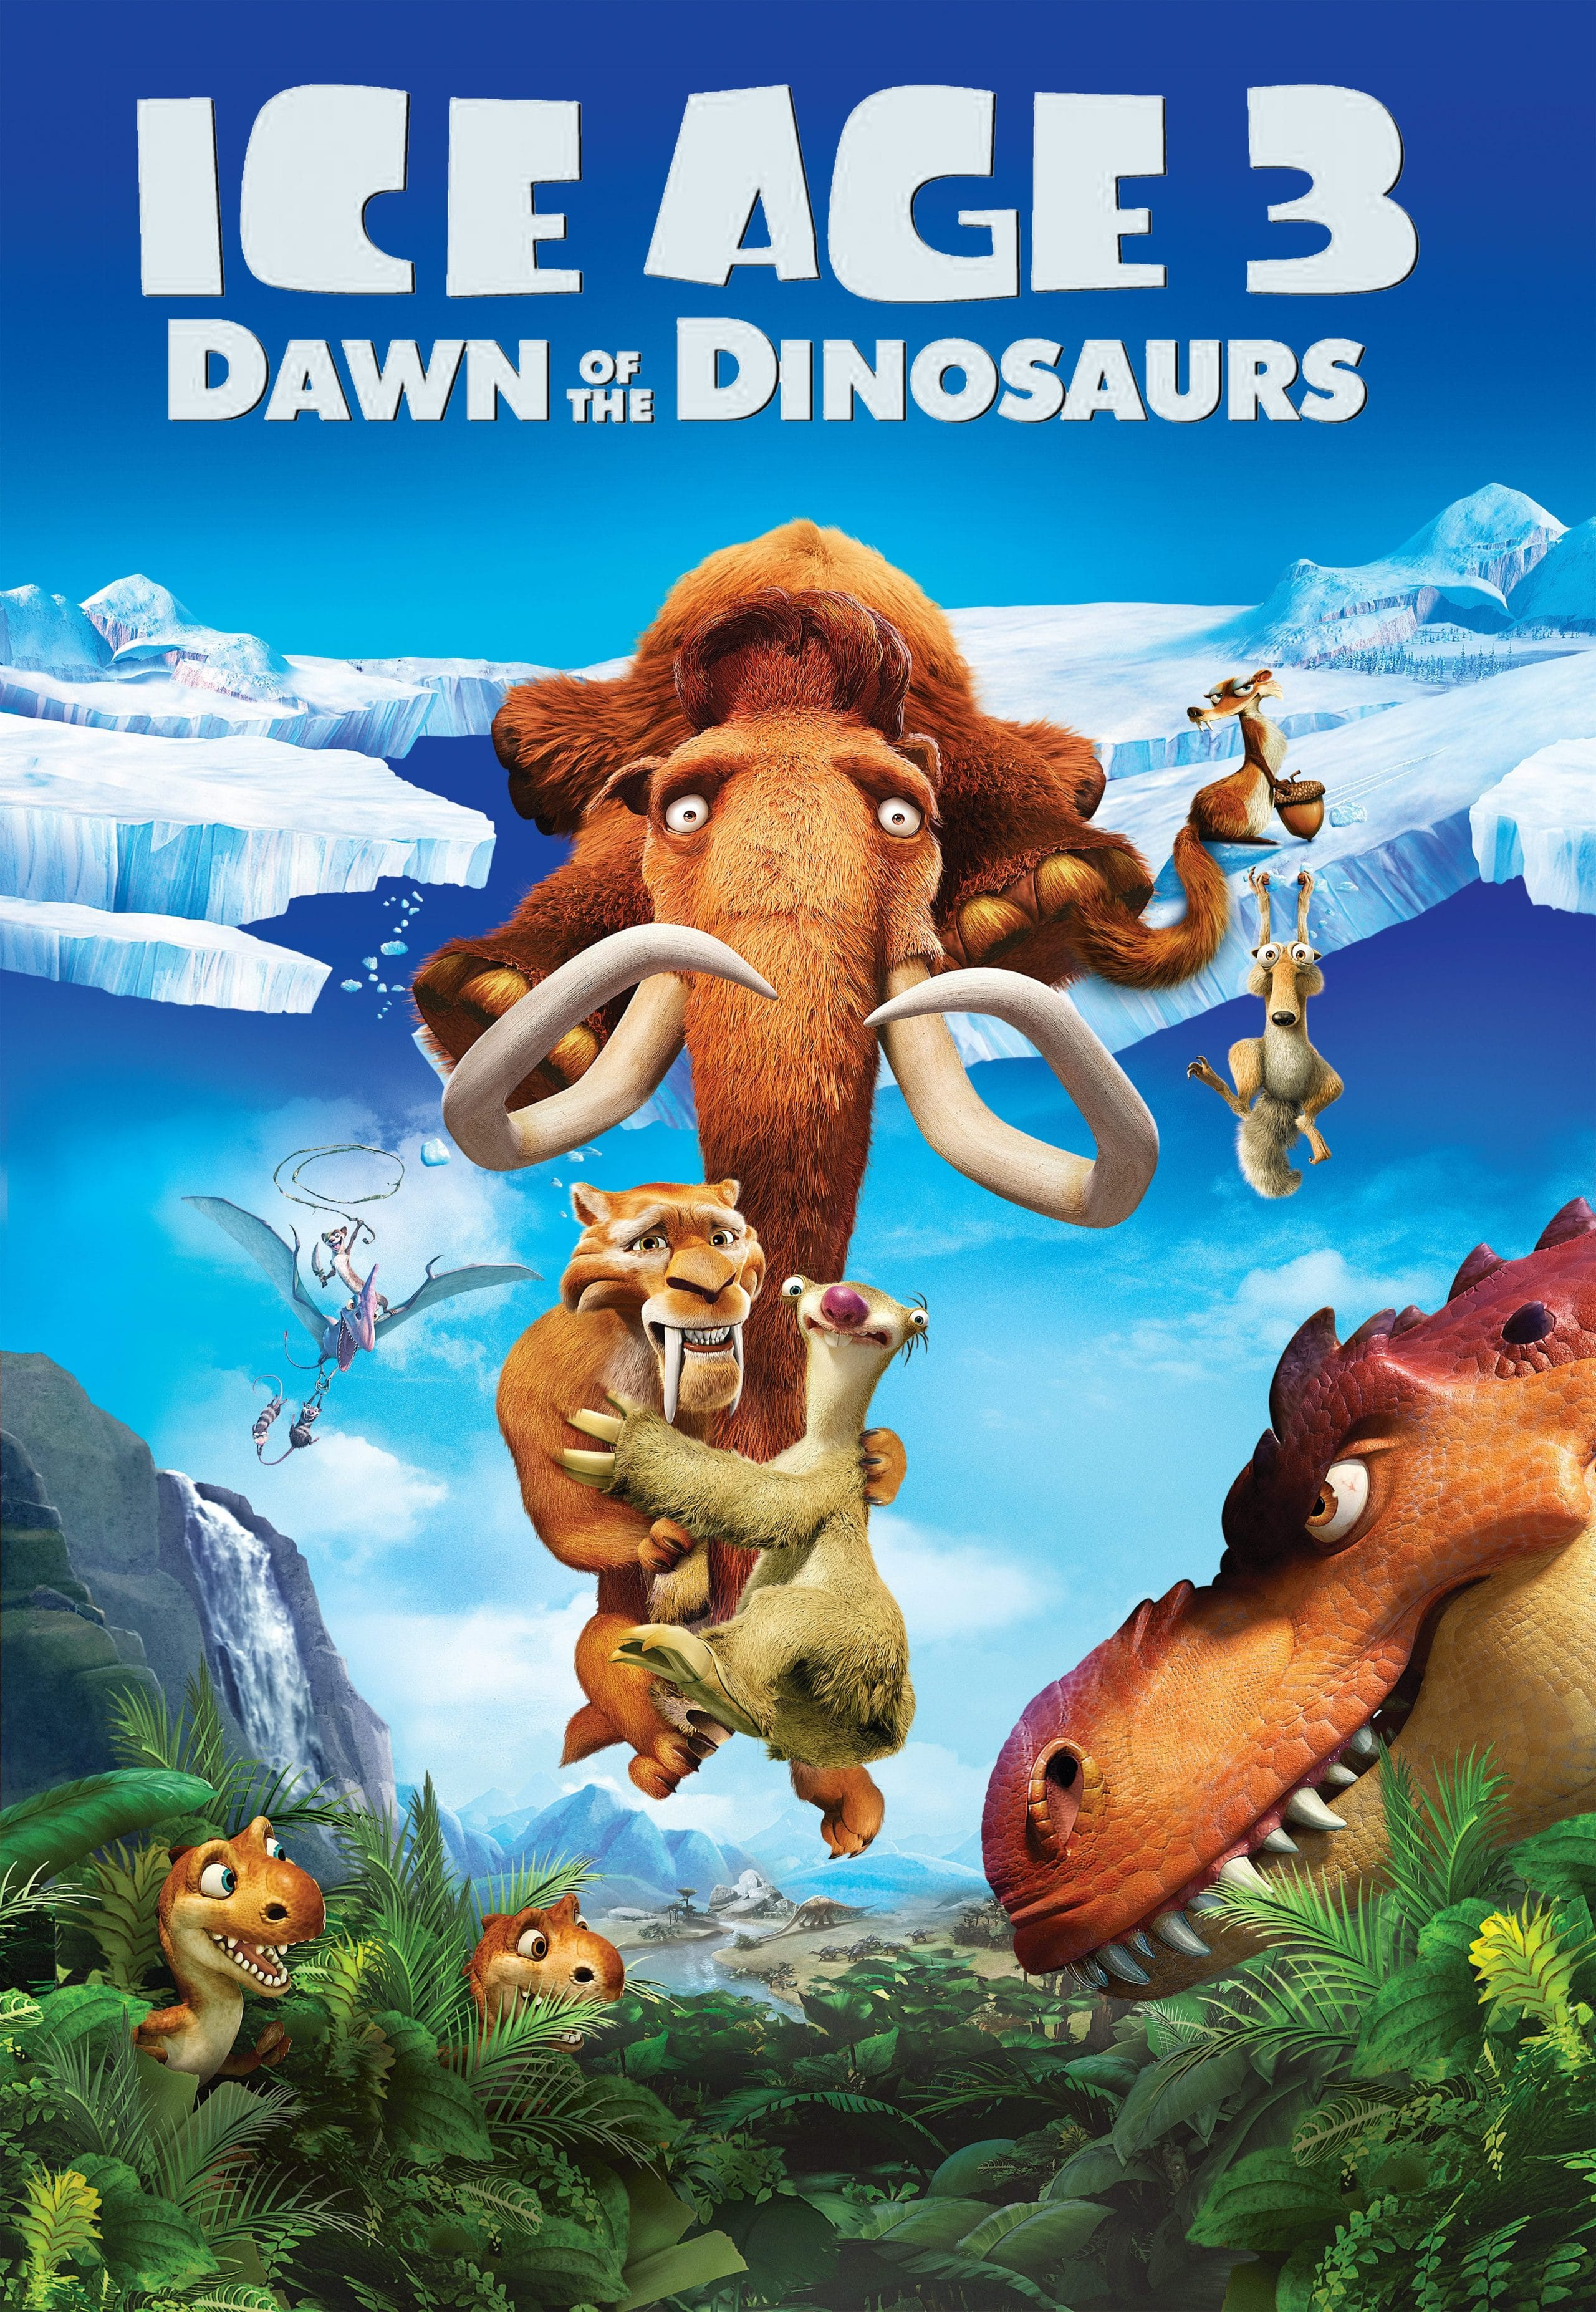 ice age poster part 3 2009 dawn of dinosuars high quality HD printable wallpapers all characters